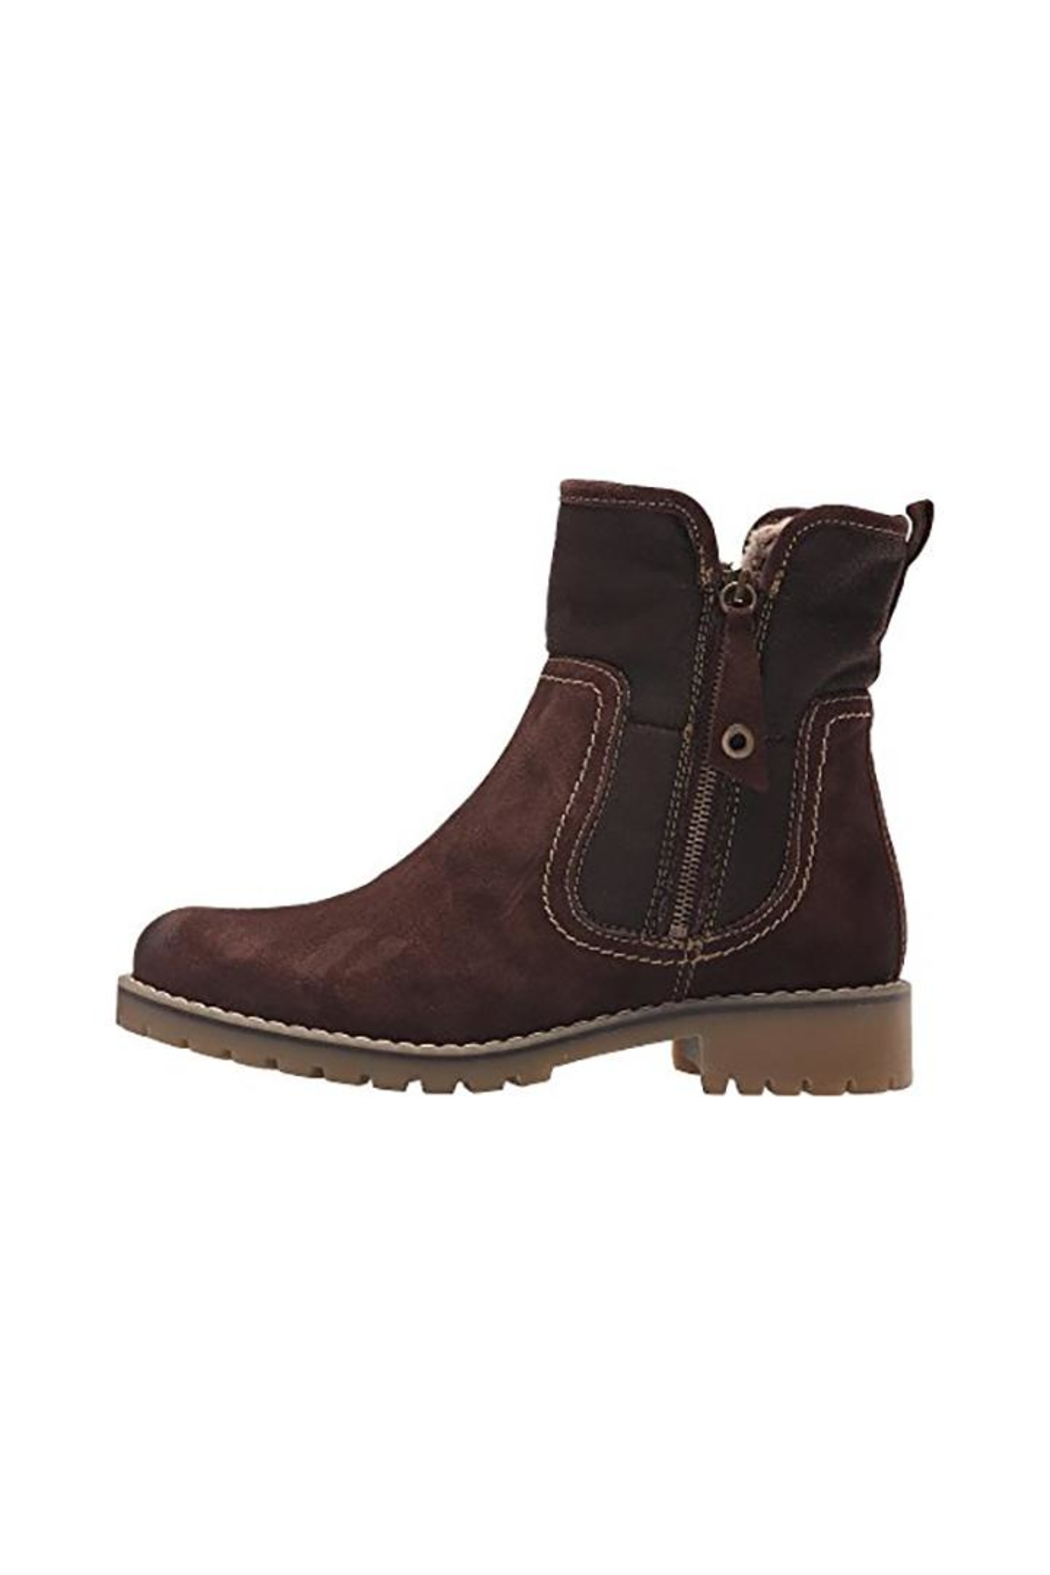 Eric Michael Denver Western-Inspired Boot - Front Cropped Image